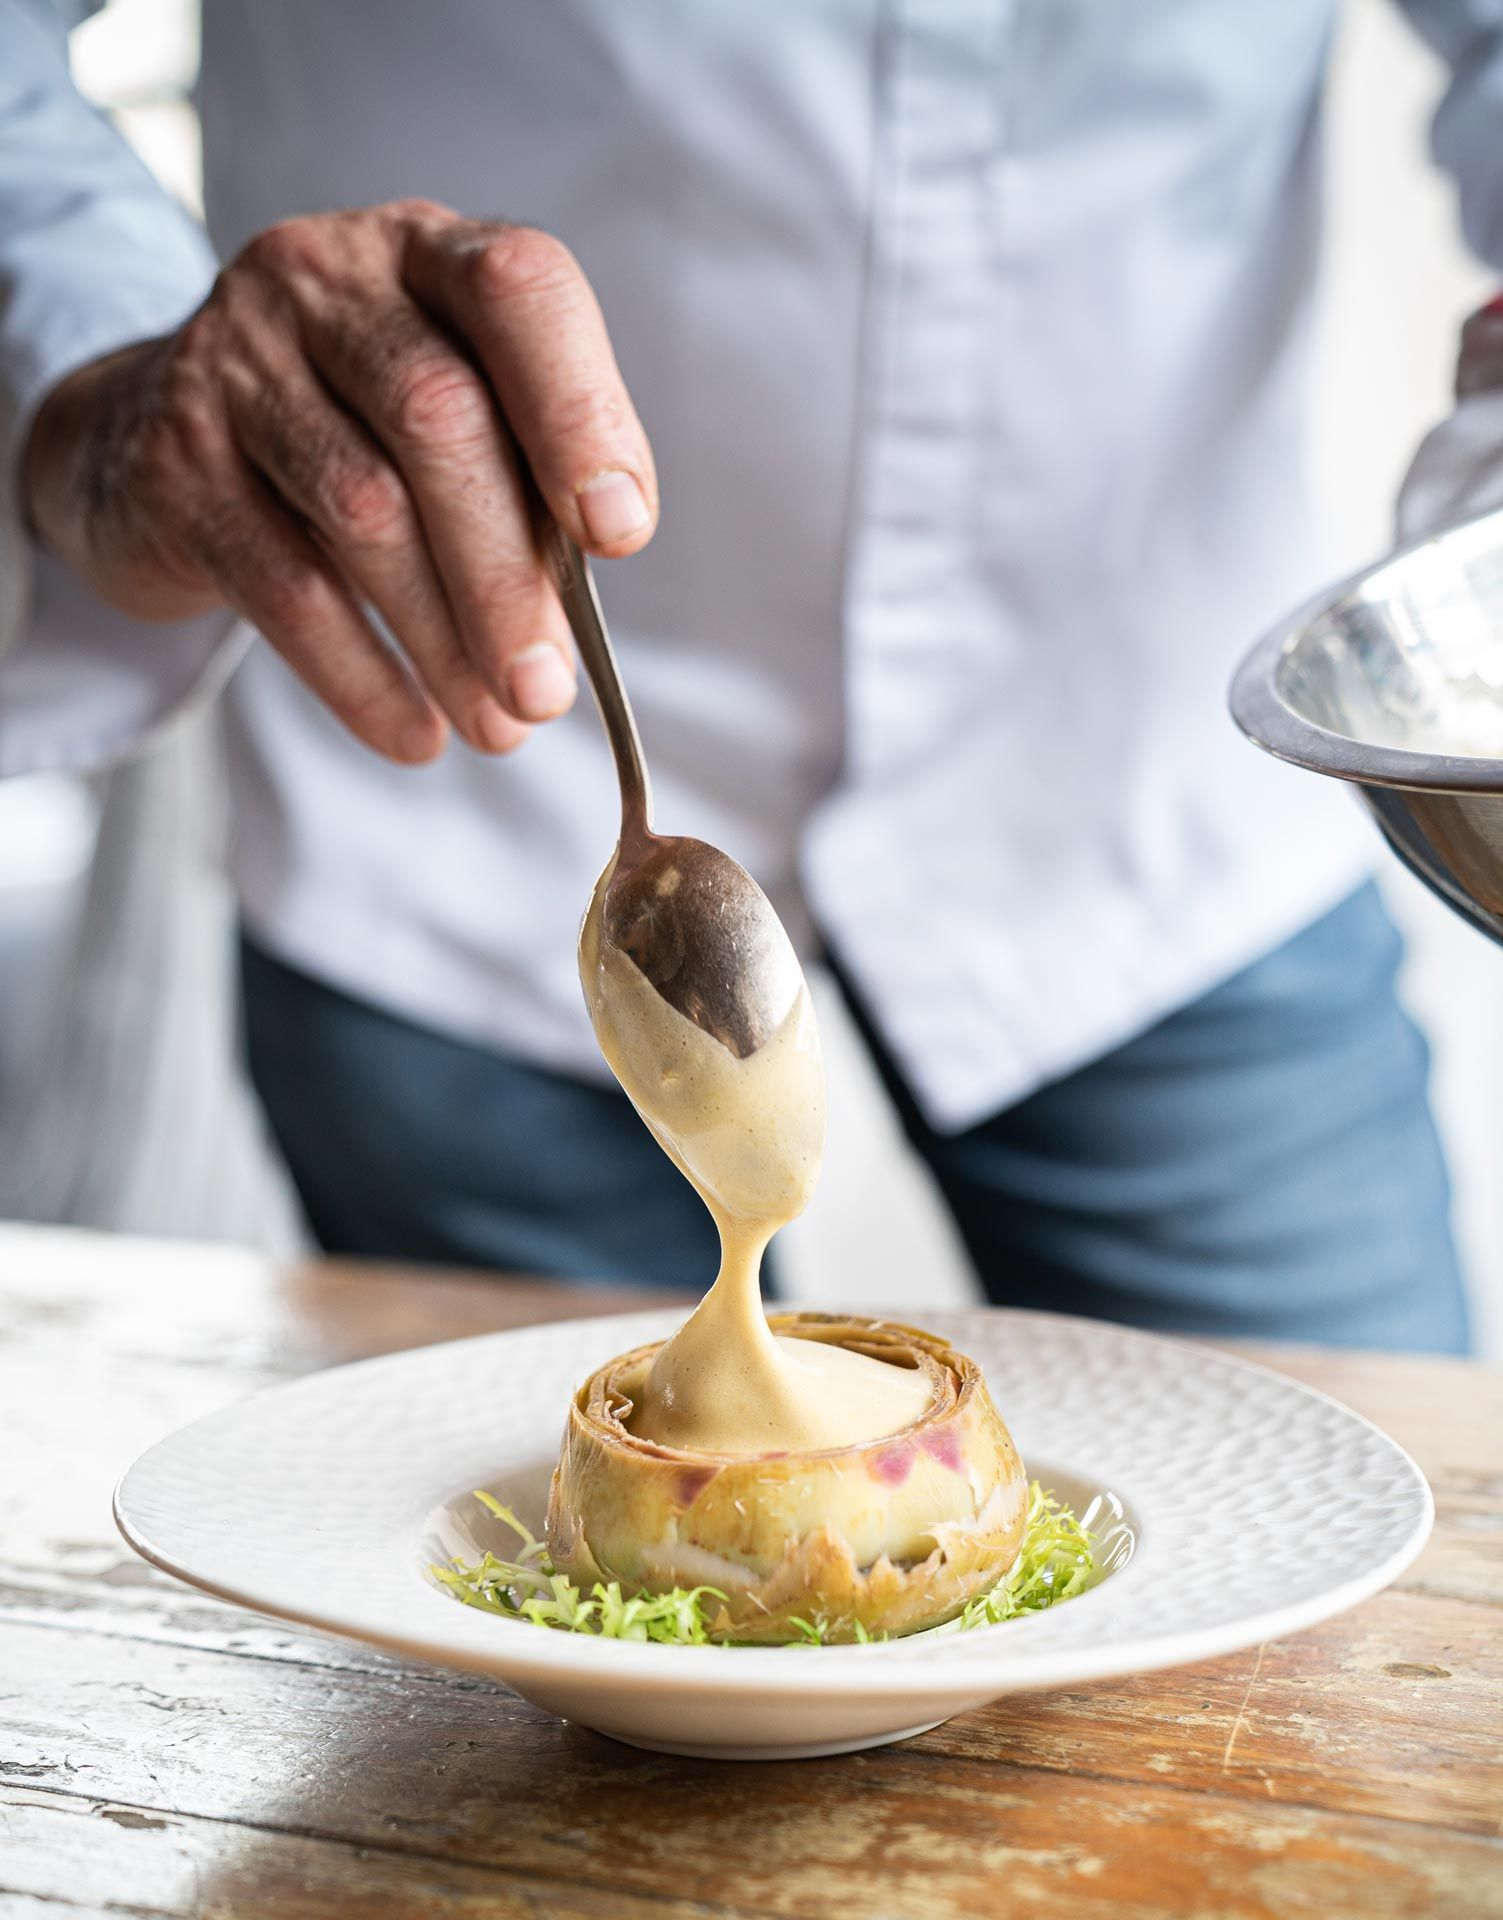 chef Didier Leroy close up of plating his meal on wood table scooping filling with spoon by Bruno Florin for Van Houtte 100th anniversary